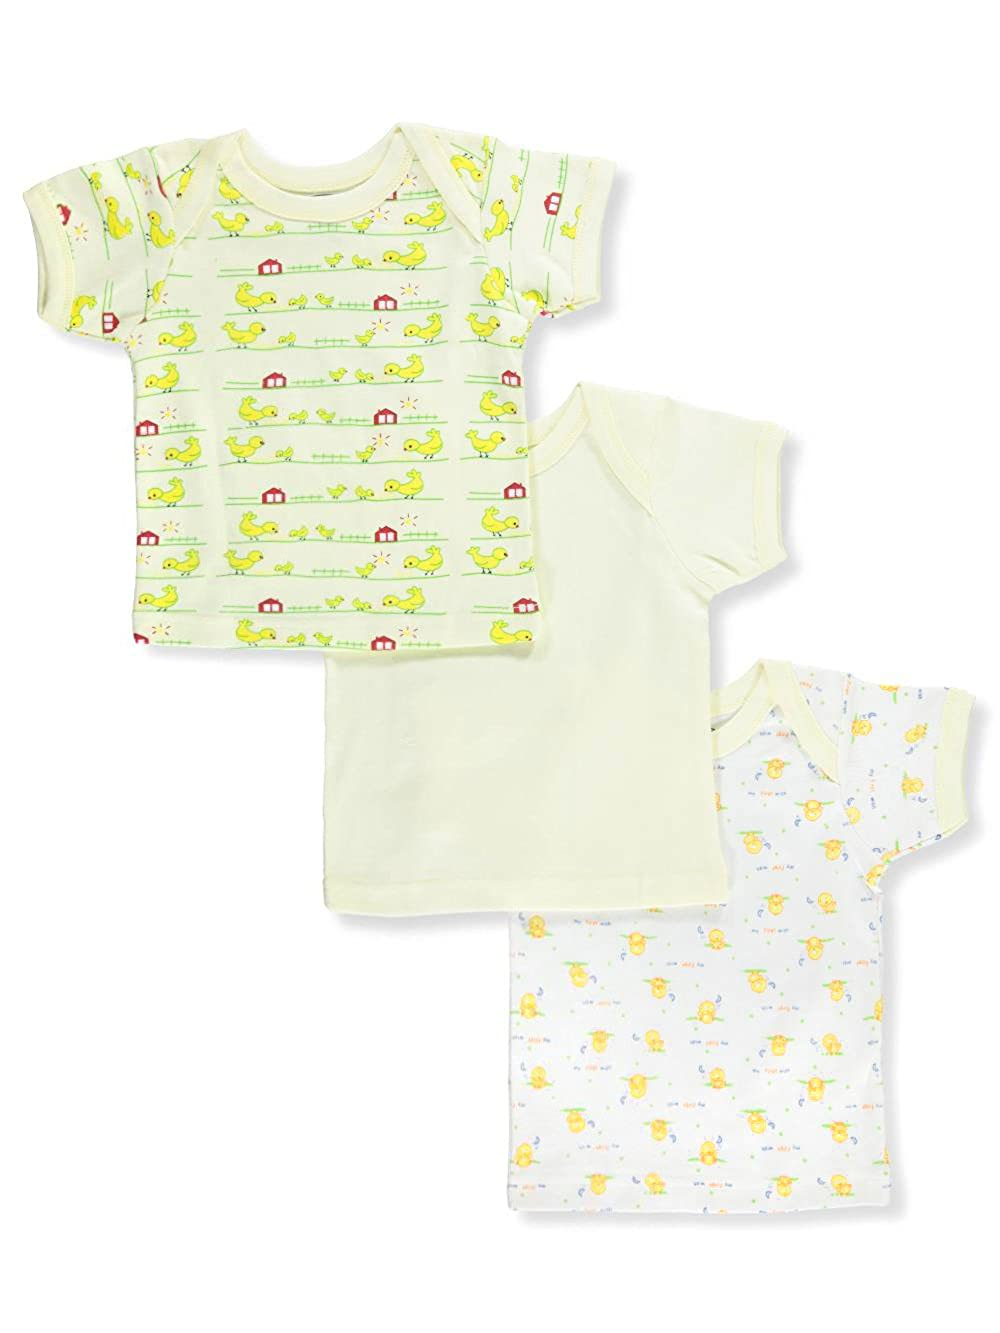 Big Oshi 100% Super soft cotton. 3-Pack Lap Shoulder T-Shirts 18-24 Months